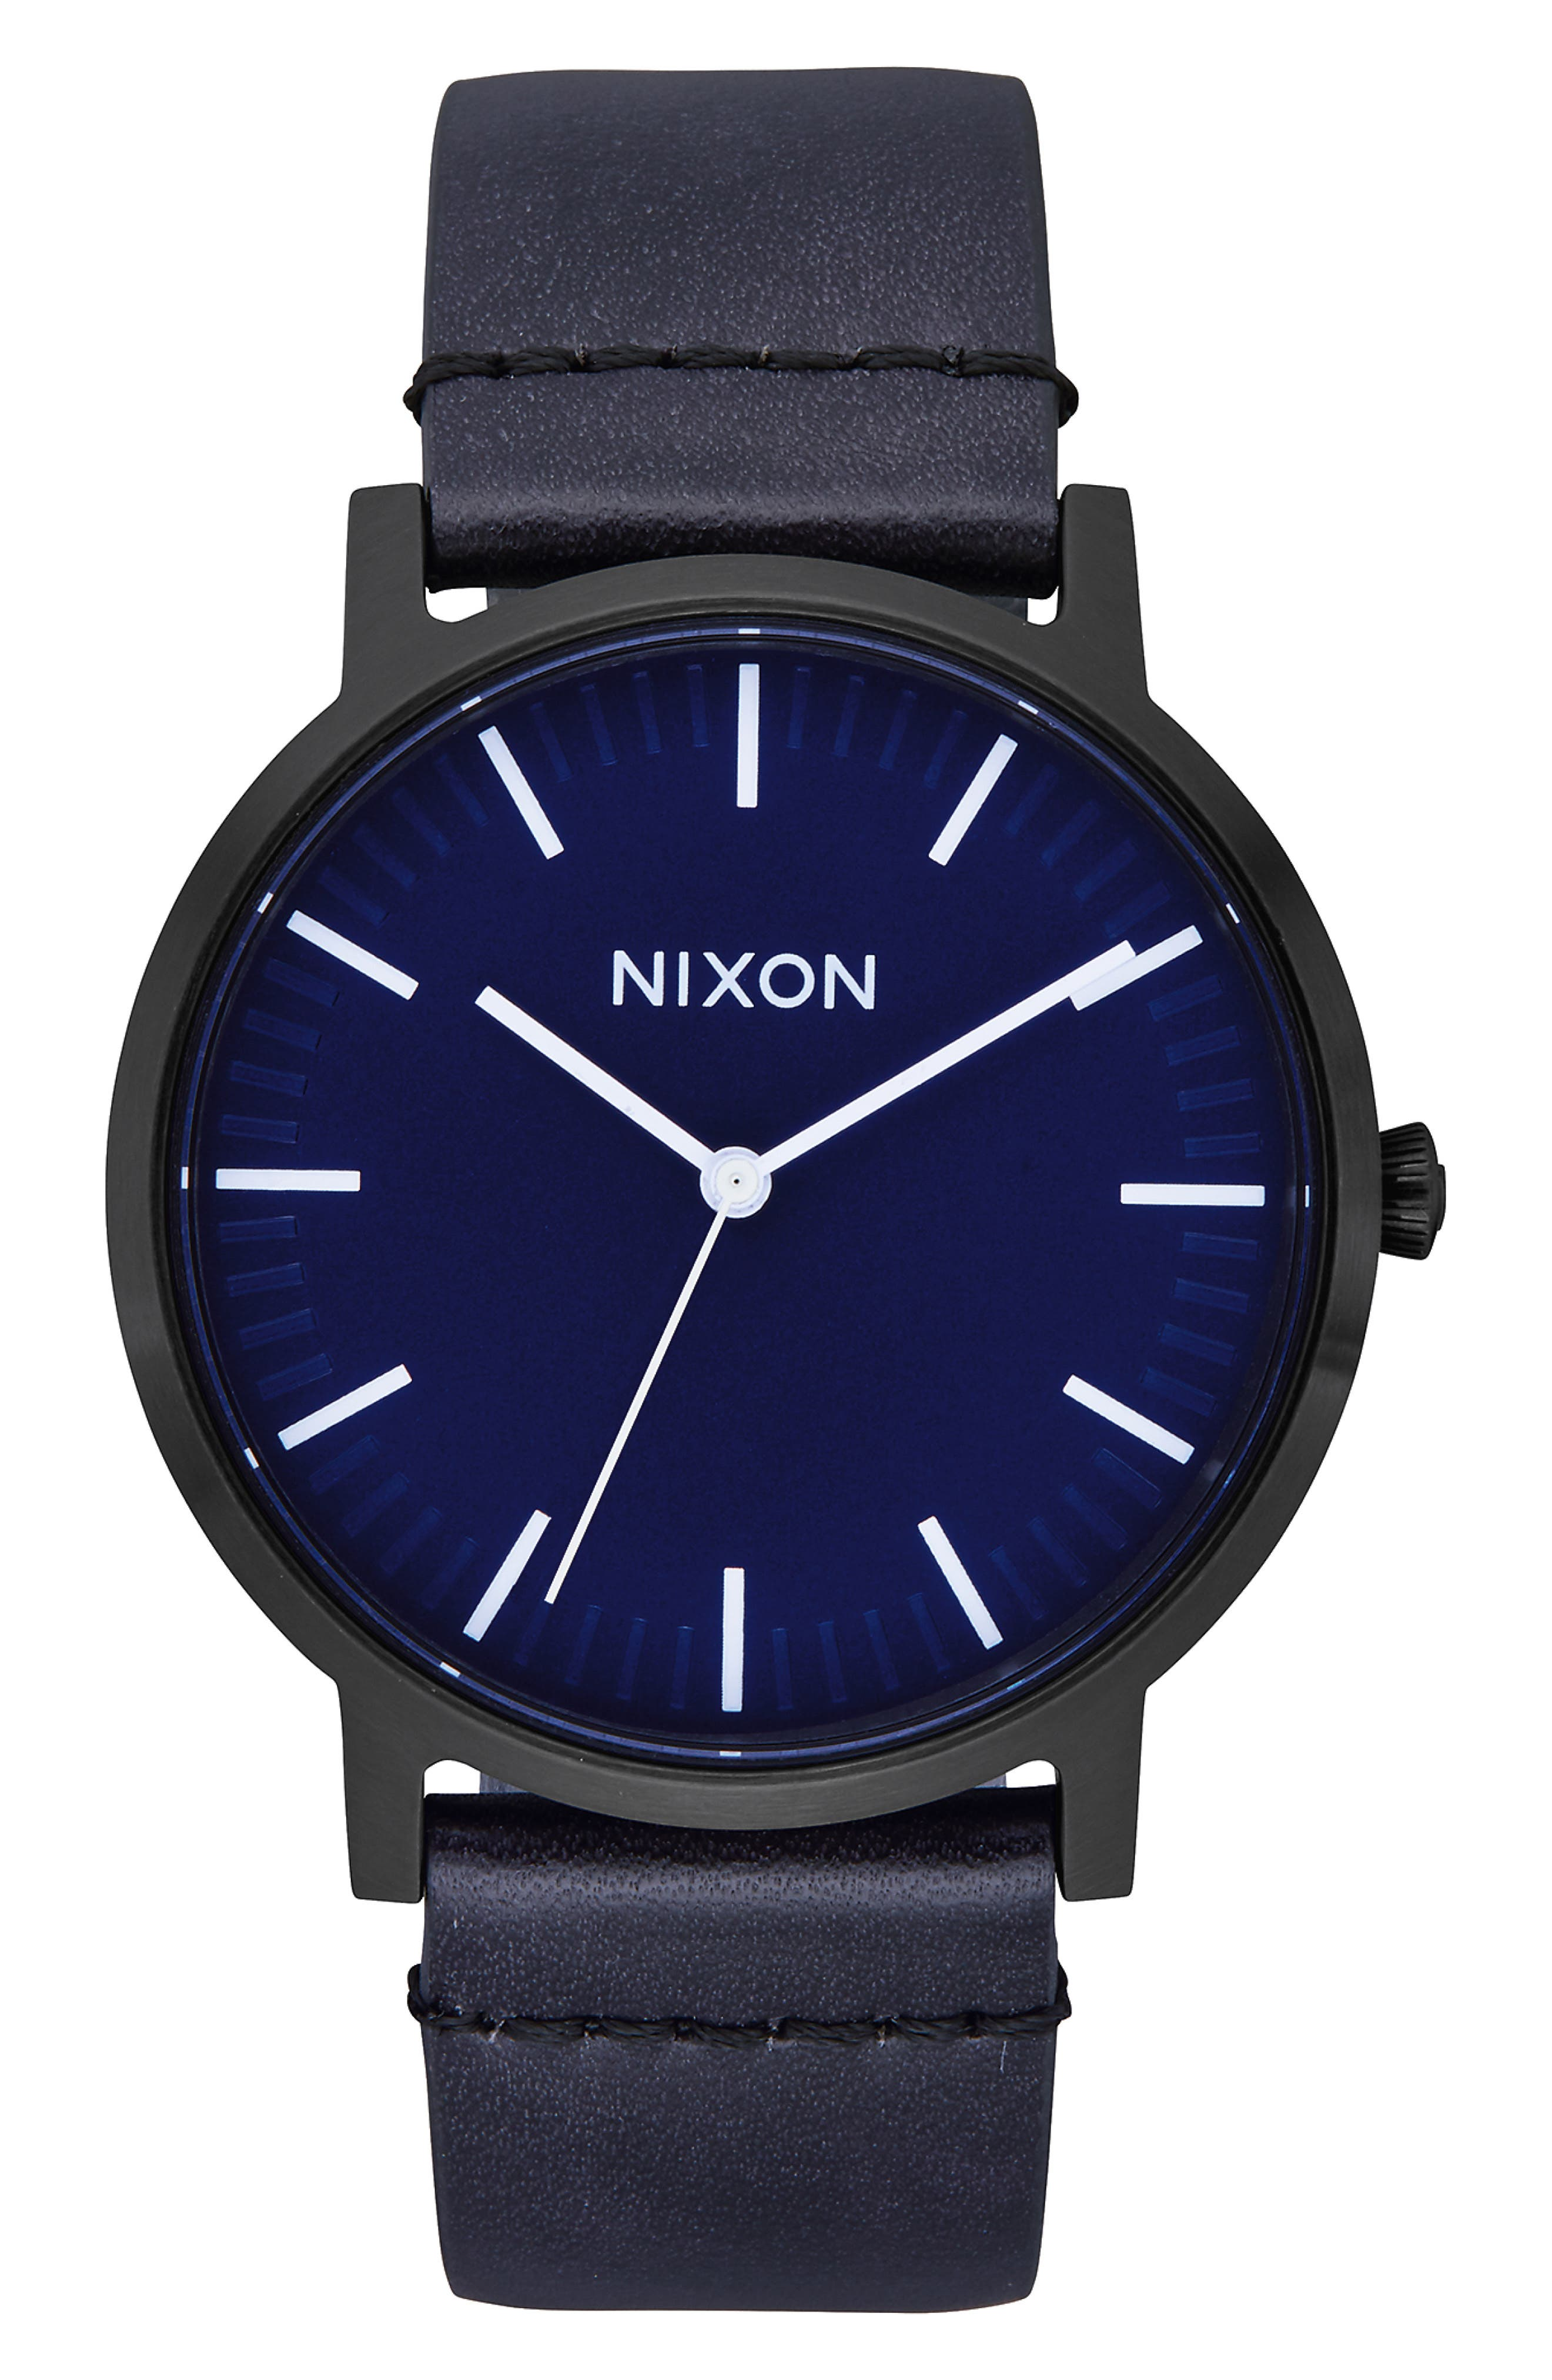 NIXON,                             Porter Round Leather Strap Watch, 40mm,                             Main thumbnail 1, color,                             BLACK/ DARK BLUE/ BLACK